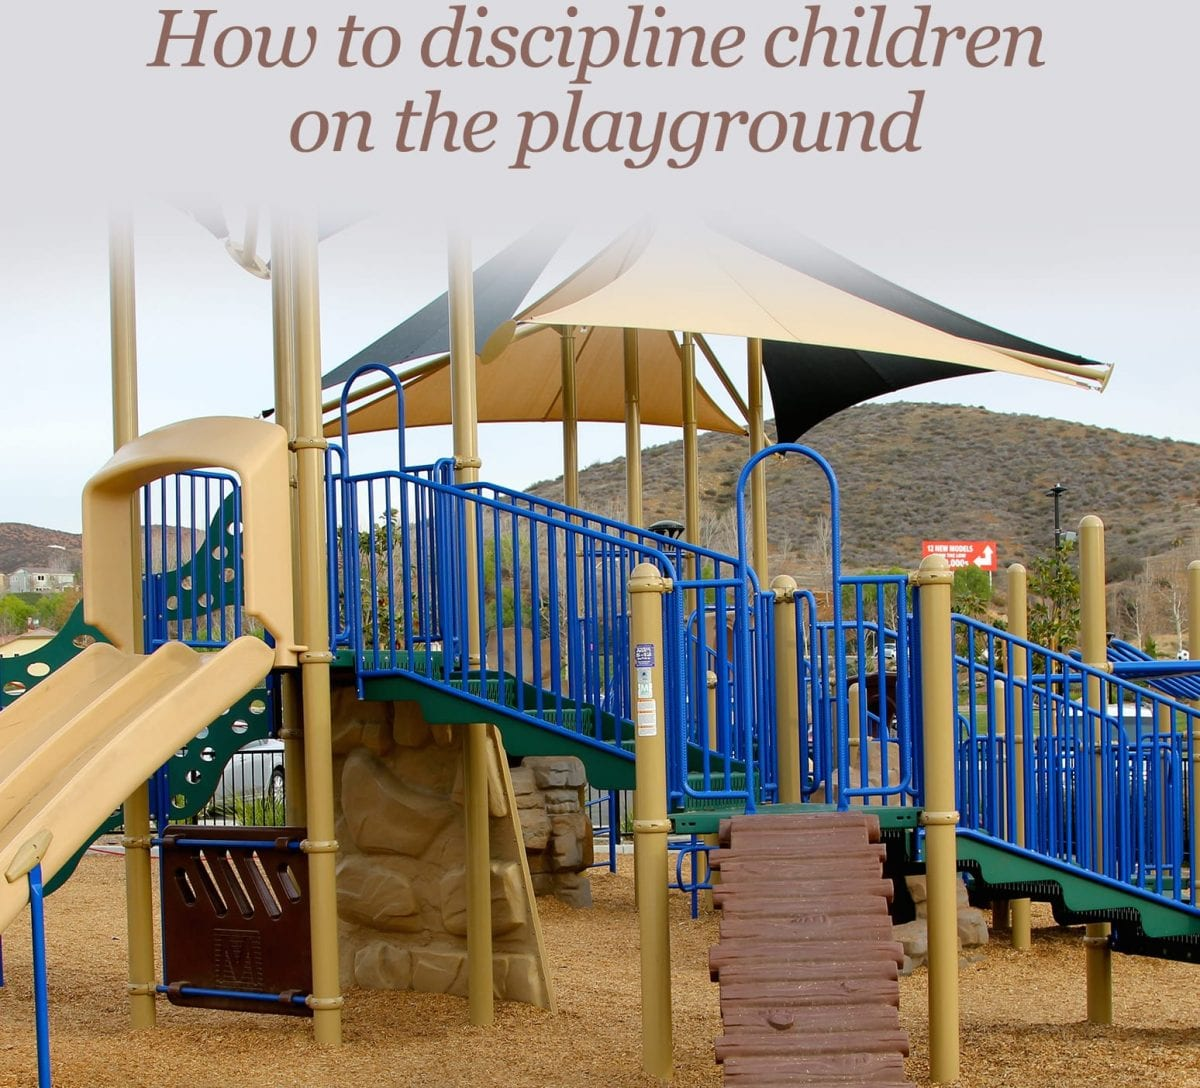 Discipline on the playground